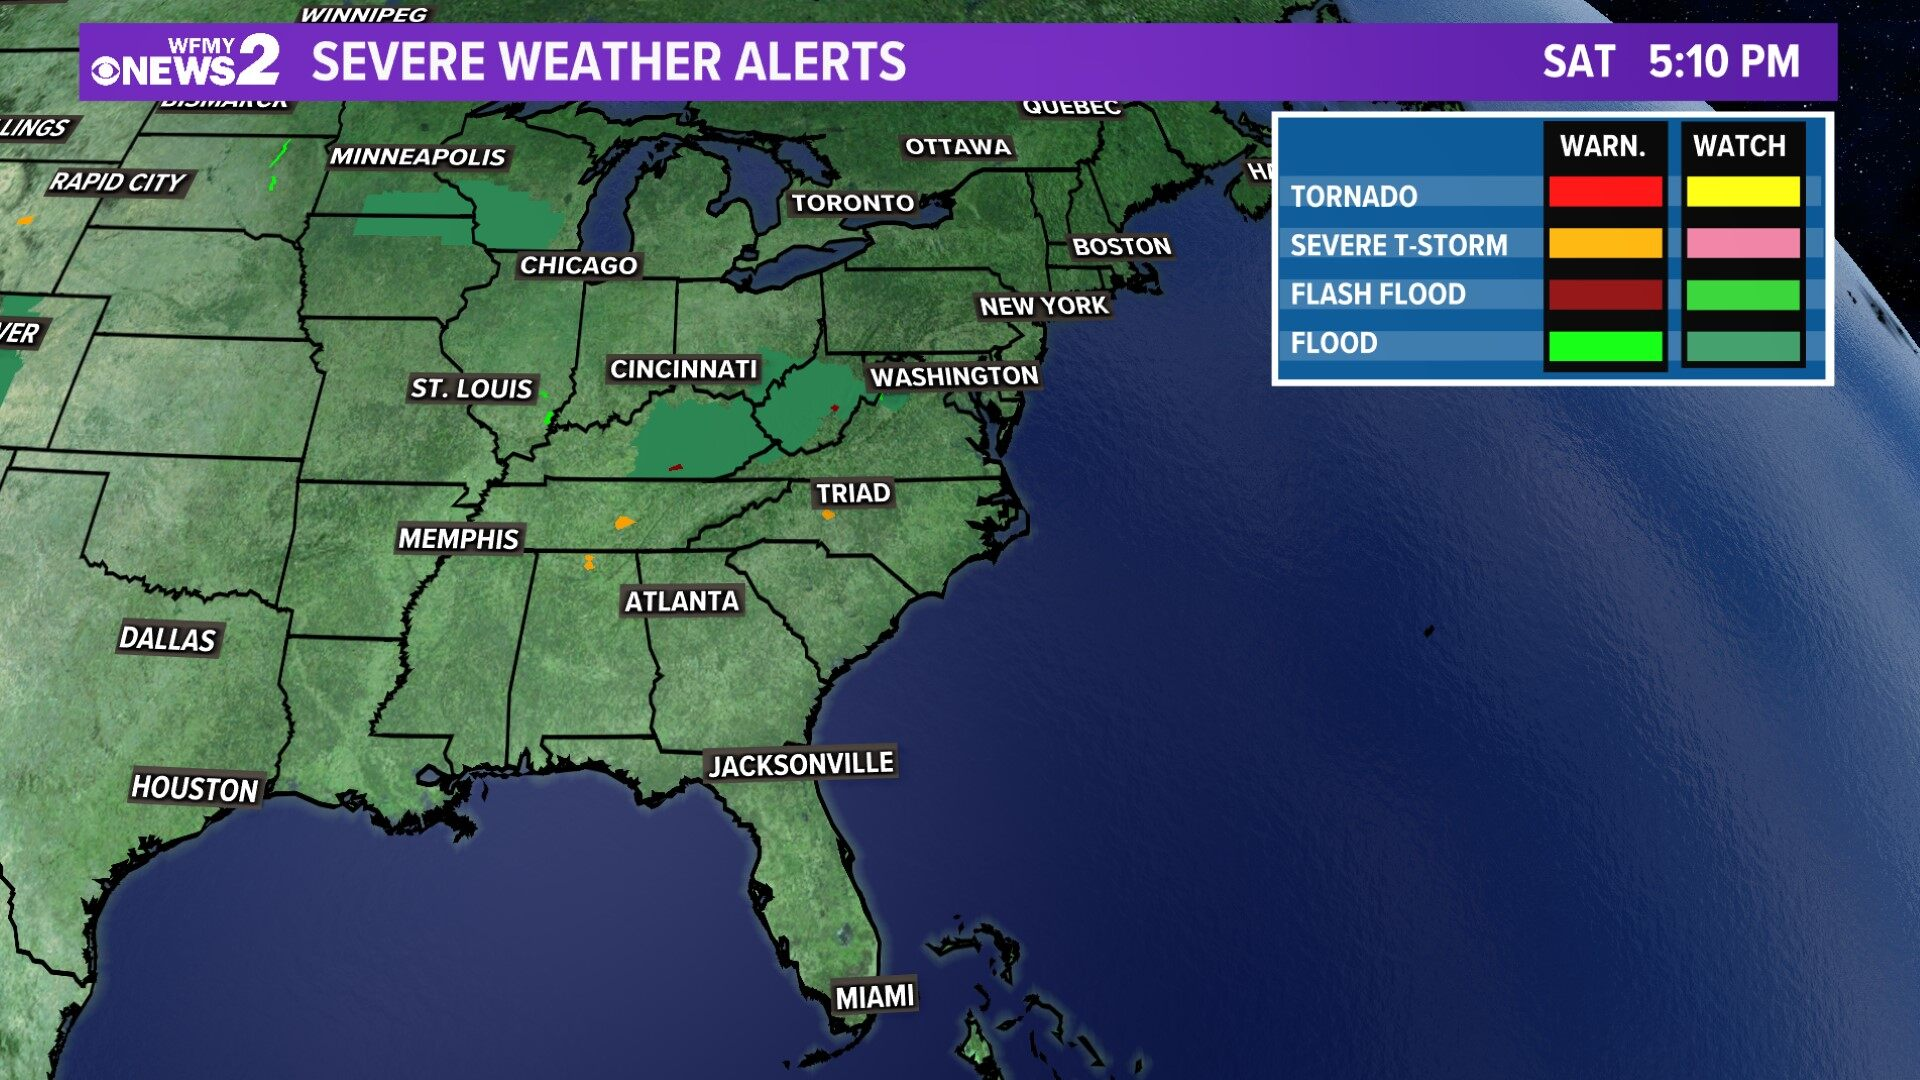 Regional Severe Weather Alerts